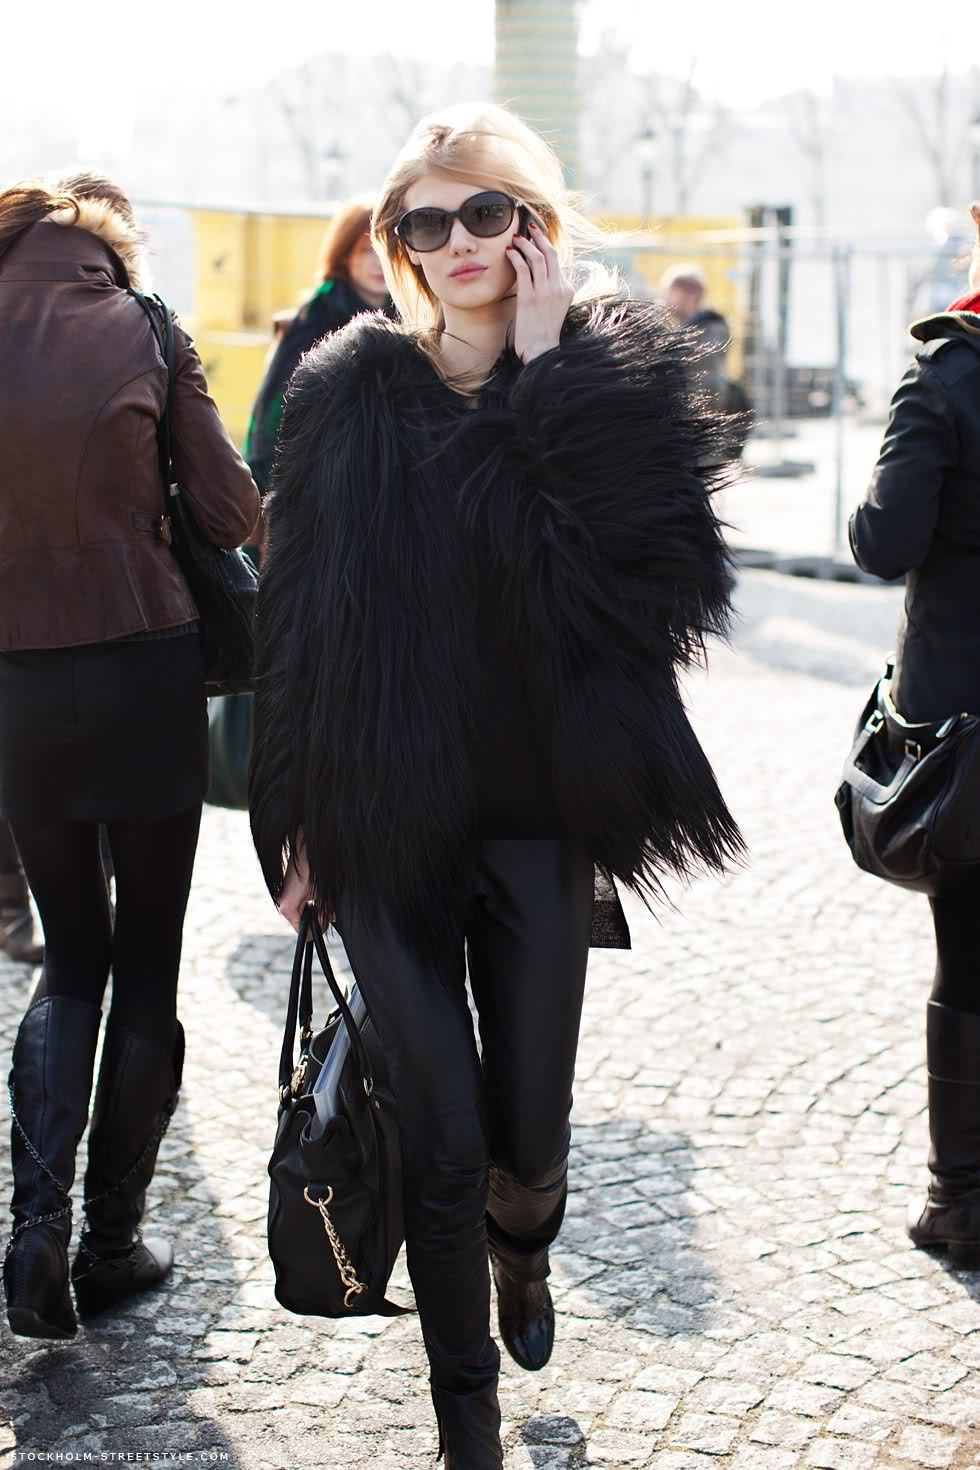 Model Street Style - All Black Outfit